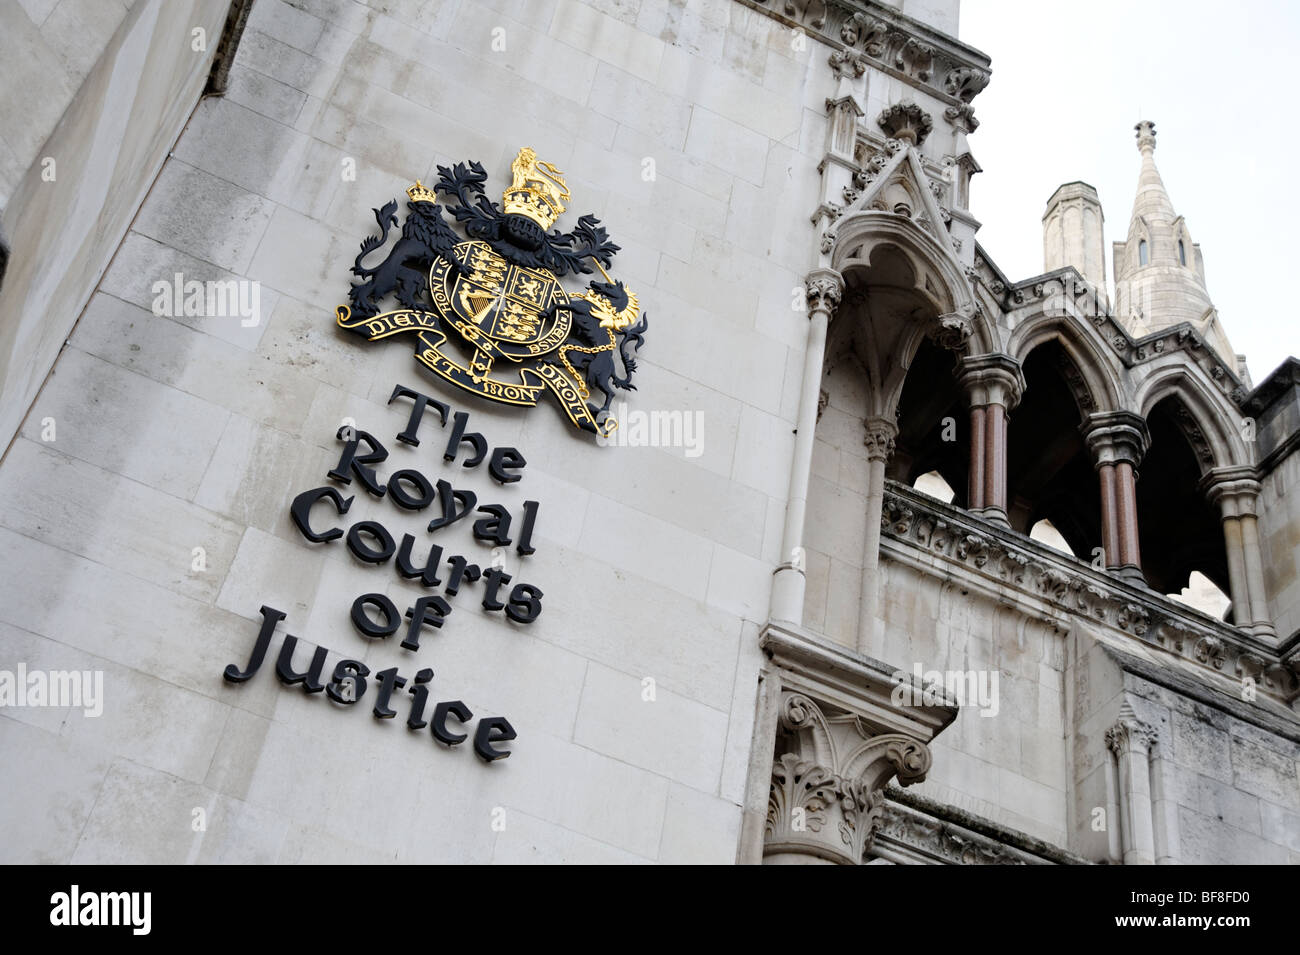 The Royal Courts of Justice. London. UK 2009. - Stock Image